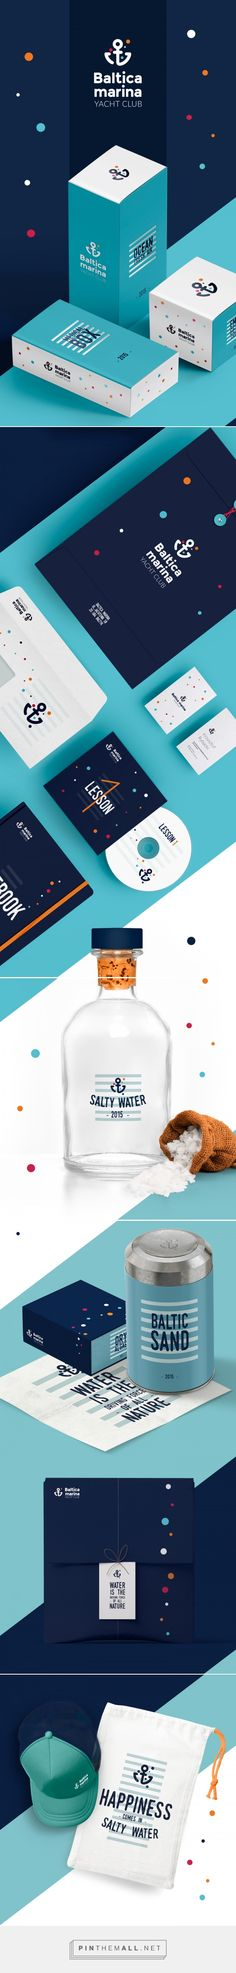 Baltica Marina Branding by Ewelina Knotek on Behance | Fivestar Branding – Design and Branding Agency & Inspiration Gallery